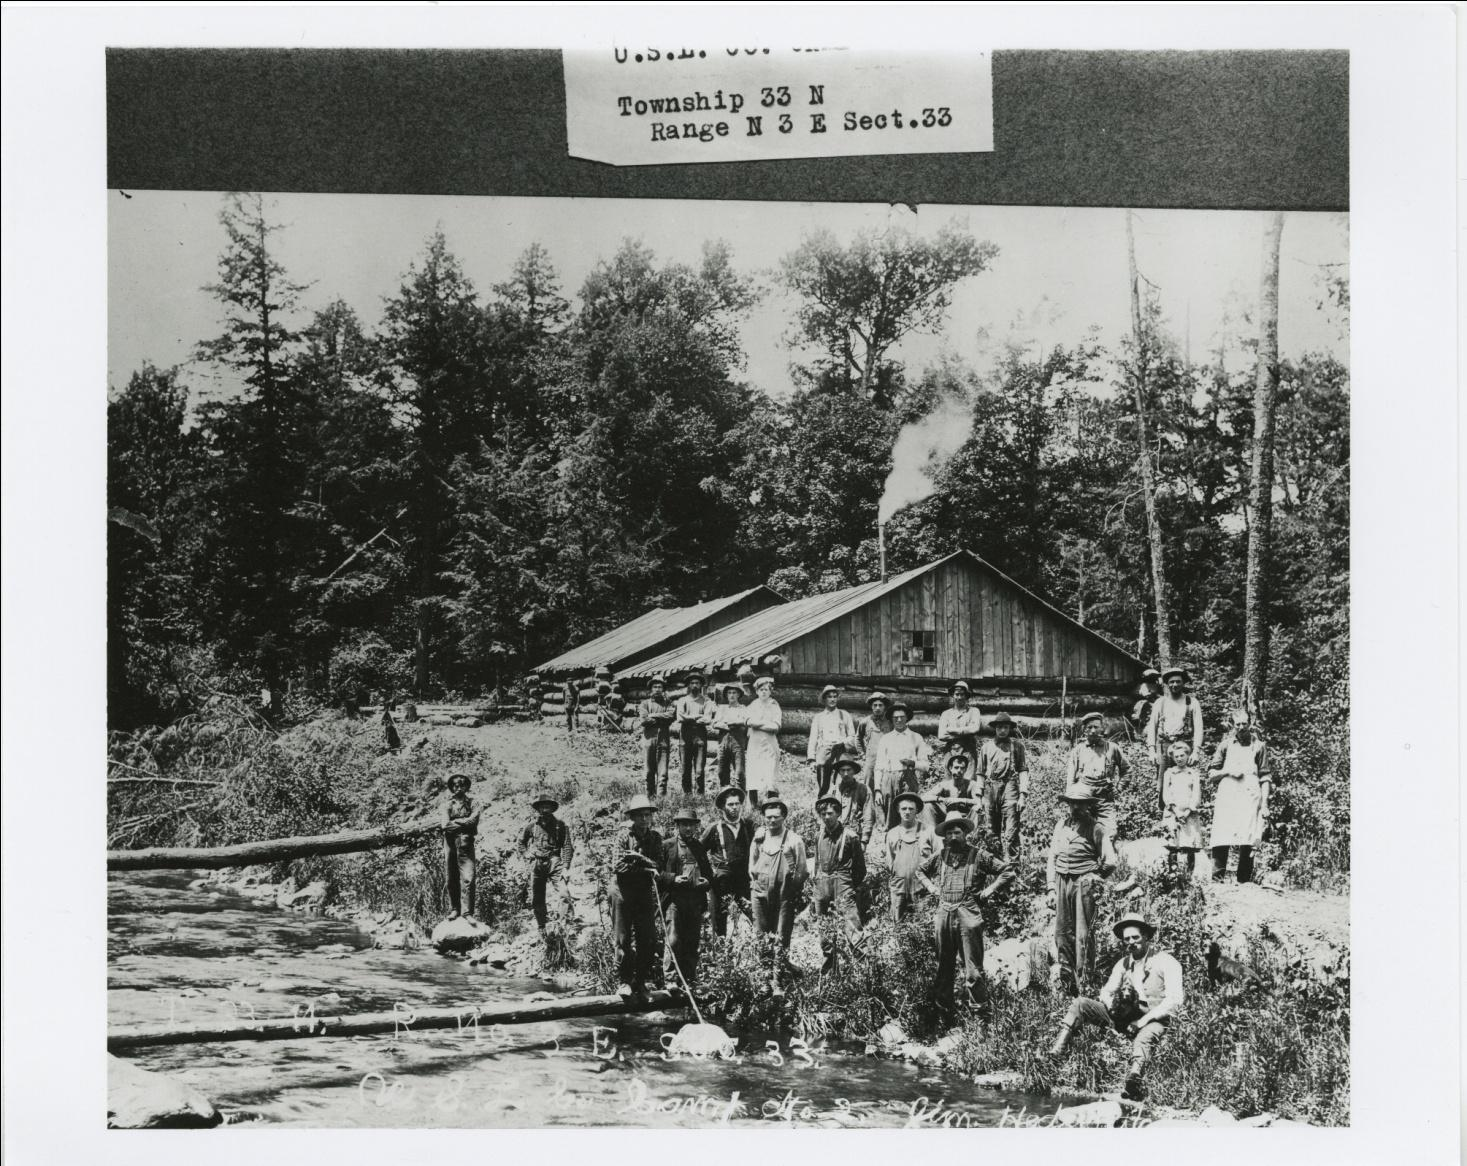 "C:\Users\Robert P. Rusch\Desktop\II. RLHSoc\Documents & Photos-Scanned\Rib Lake History 10700-10799\10792-P. ""US Leather Company Camp 2, Township 33 N, Range N .jpg"